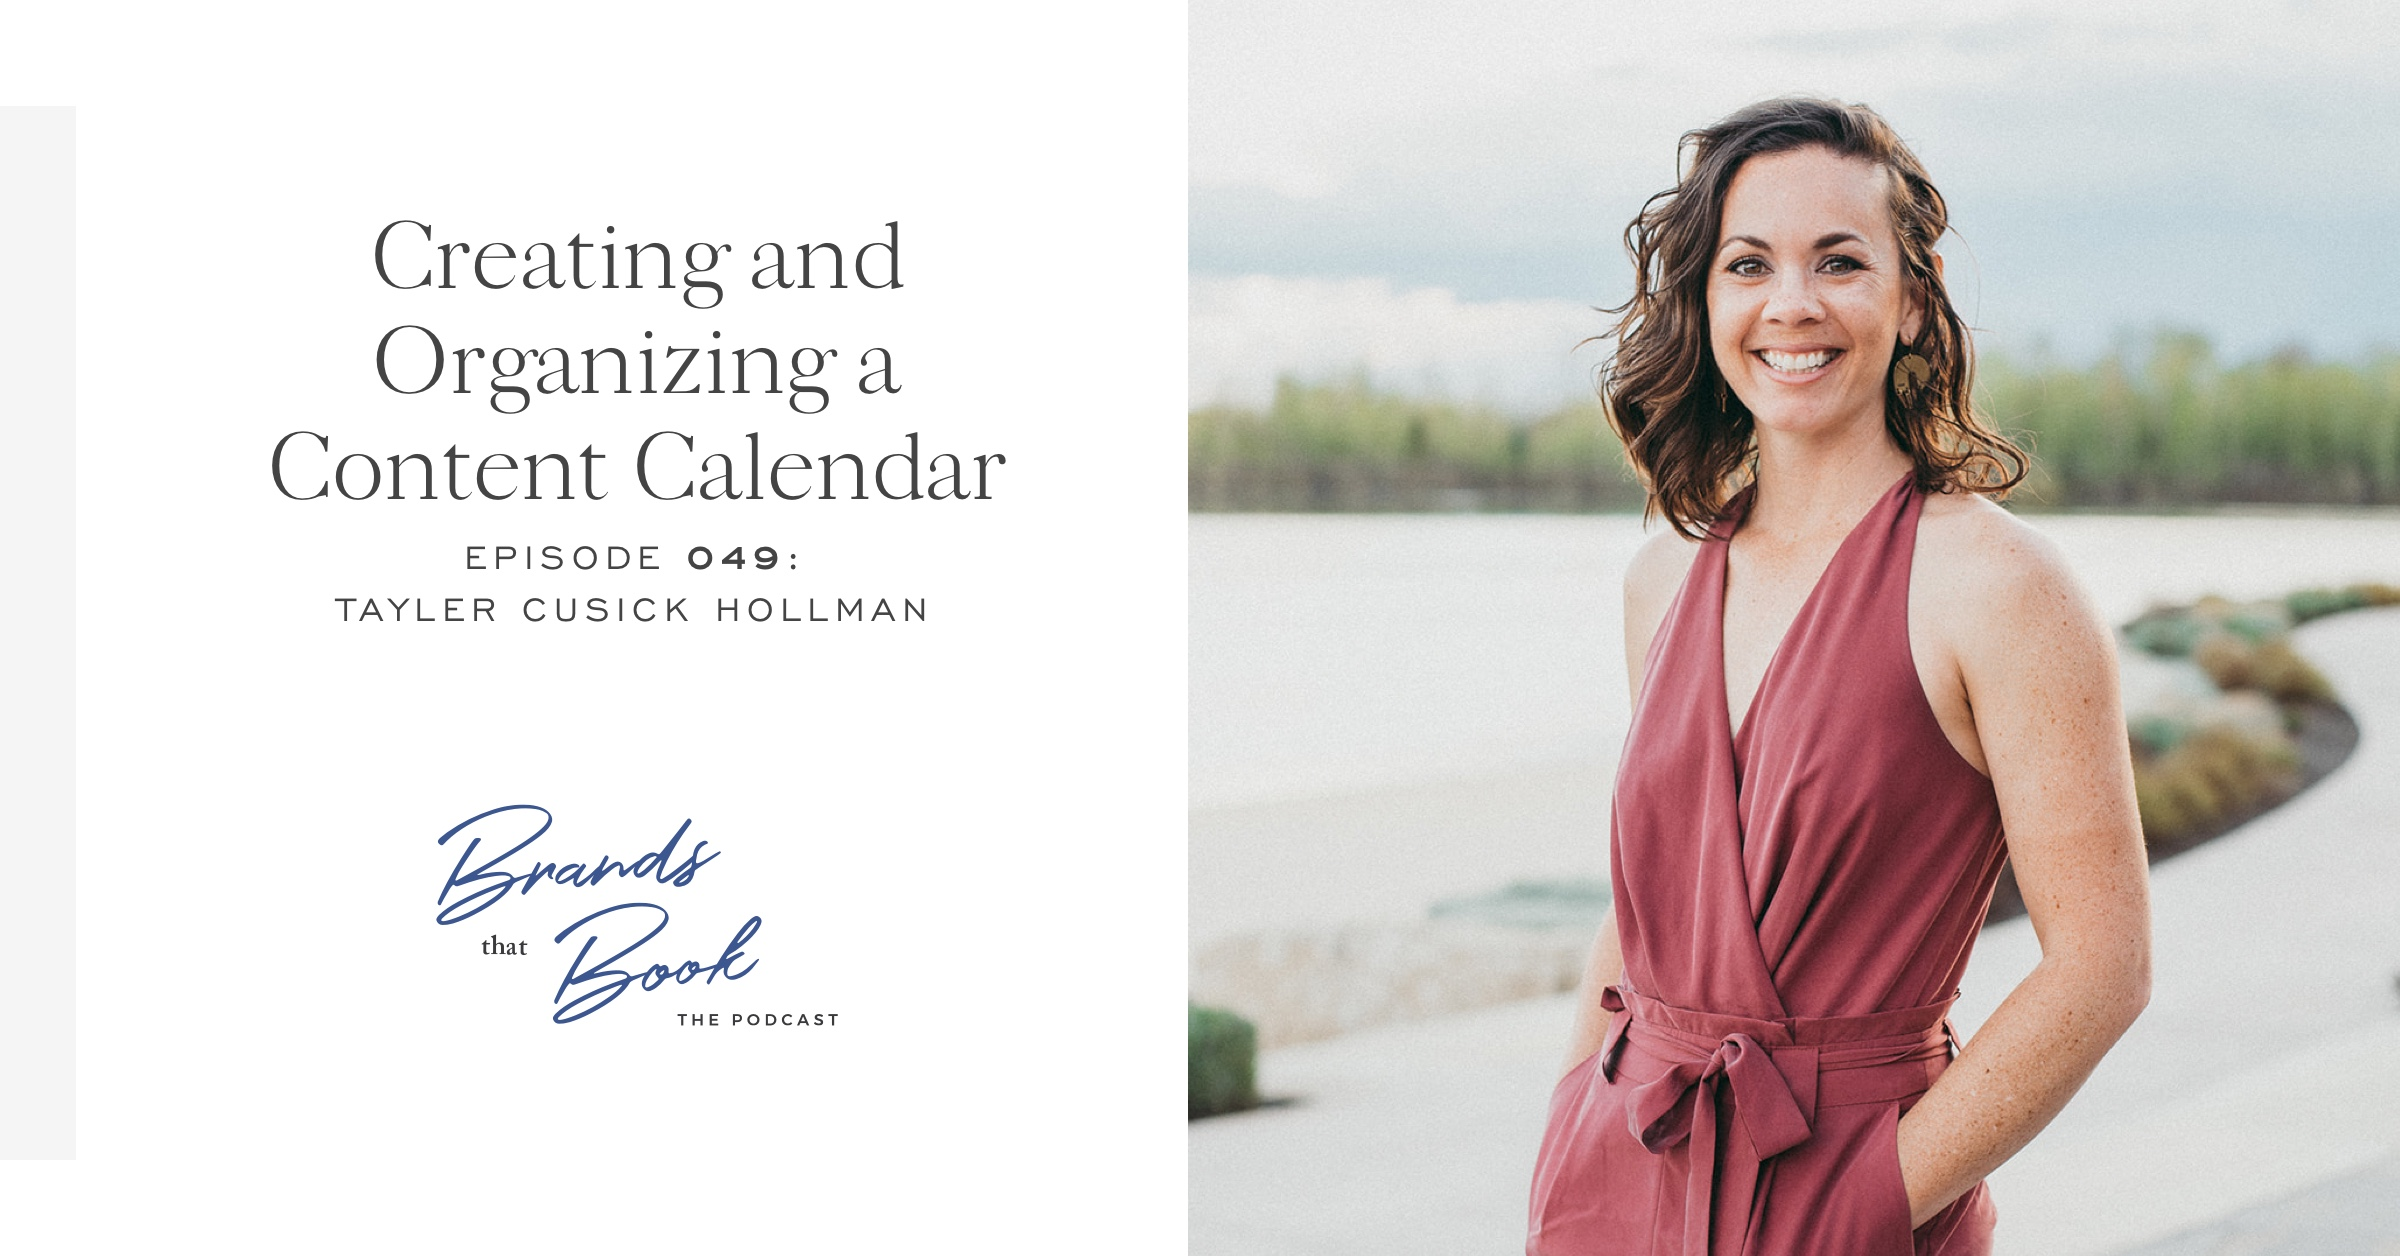 brands-that-book-podcast-creating-content-calendar-tayler-cusick-hollman.jpg